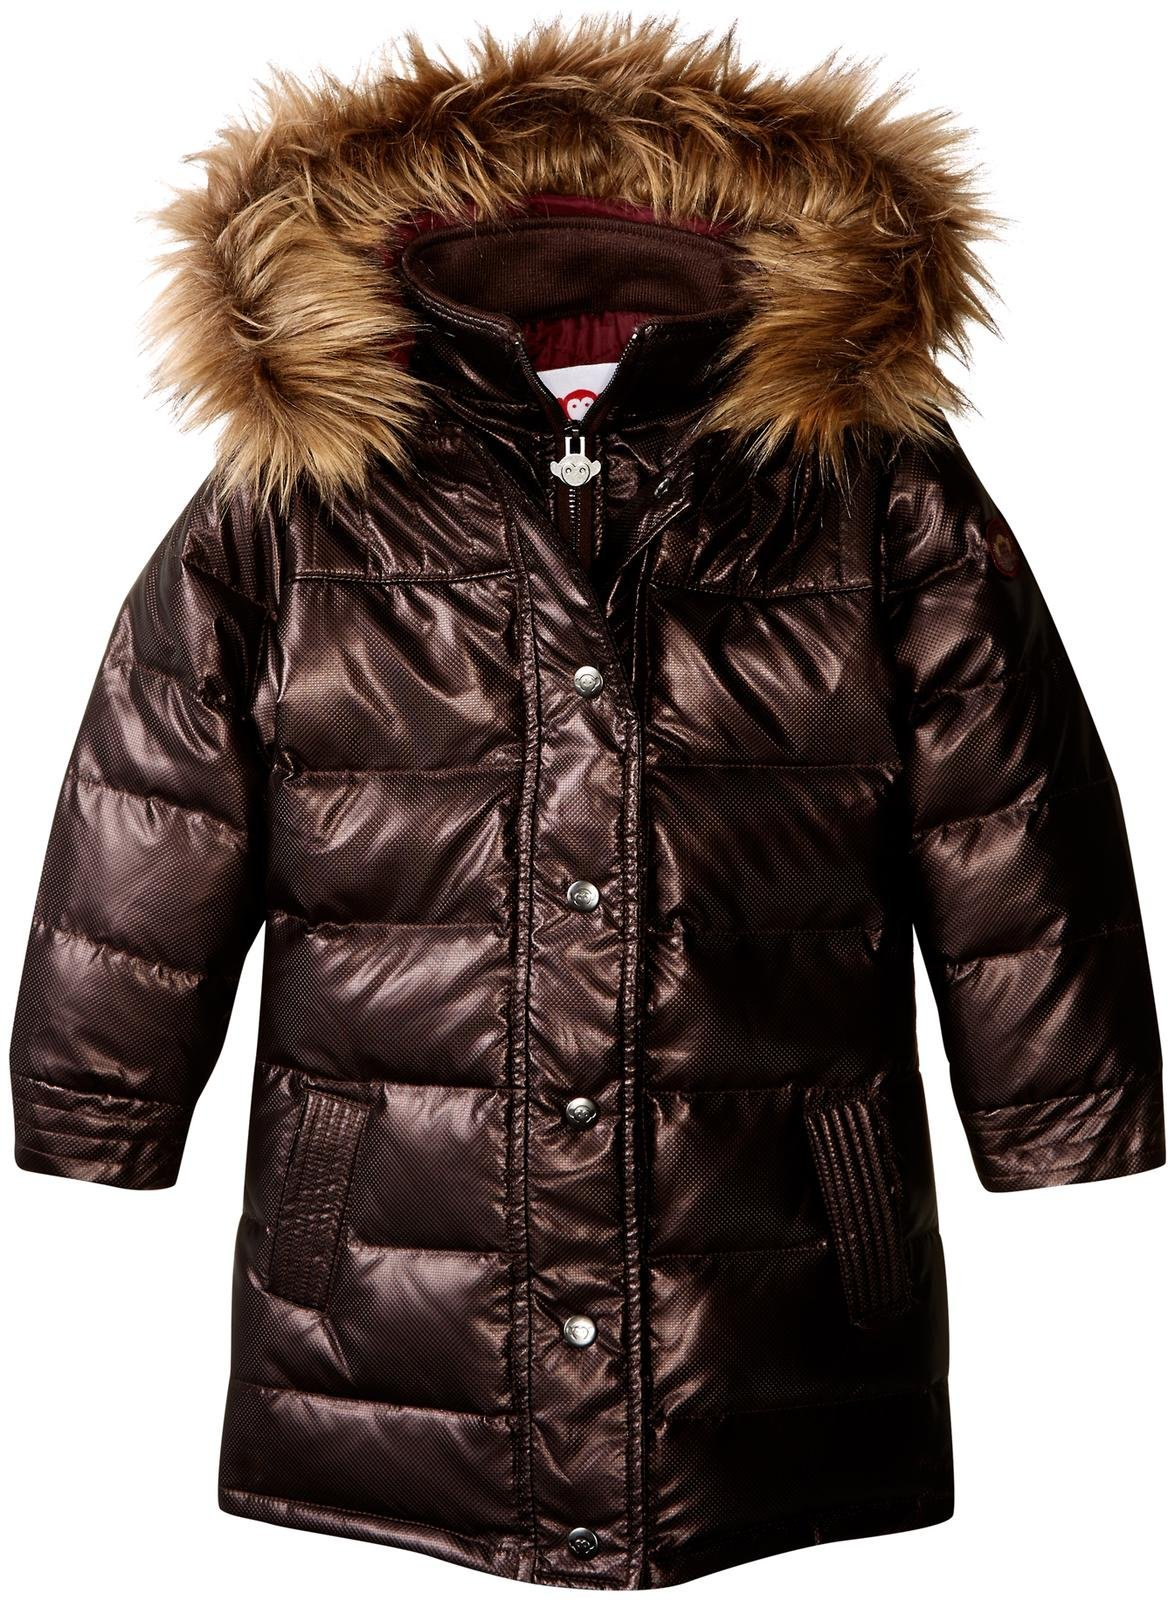 Appaman Girls' Long Down Coat, Black Copper, 3T